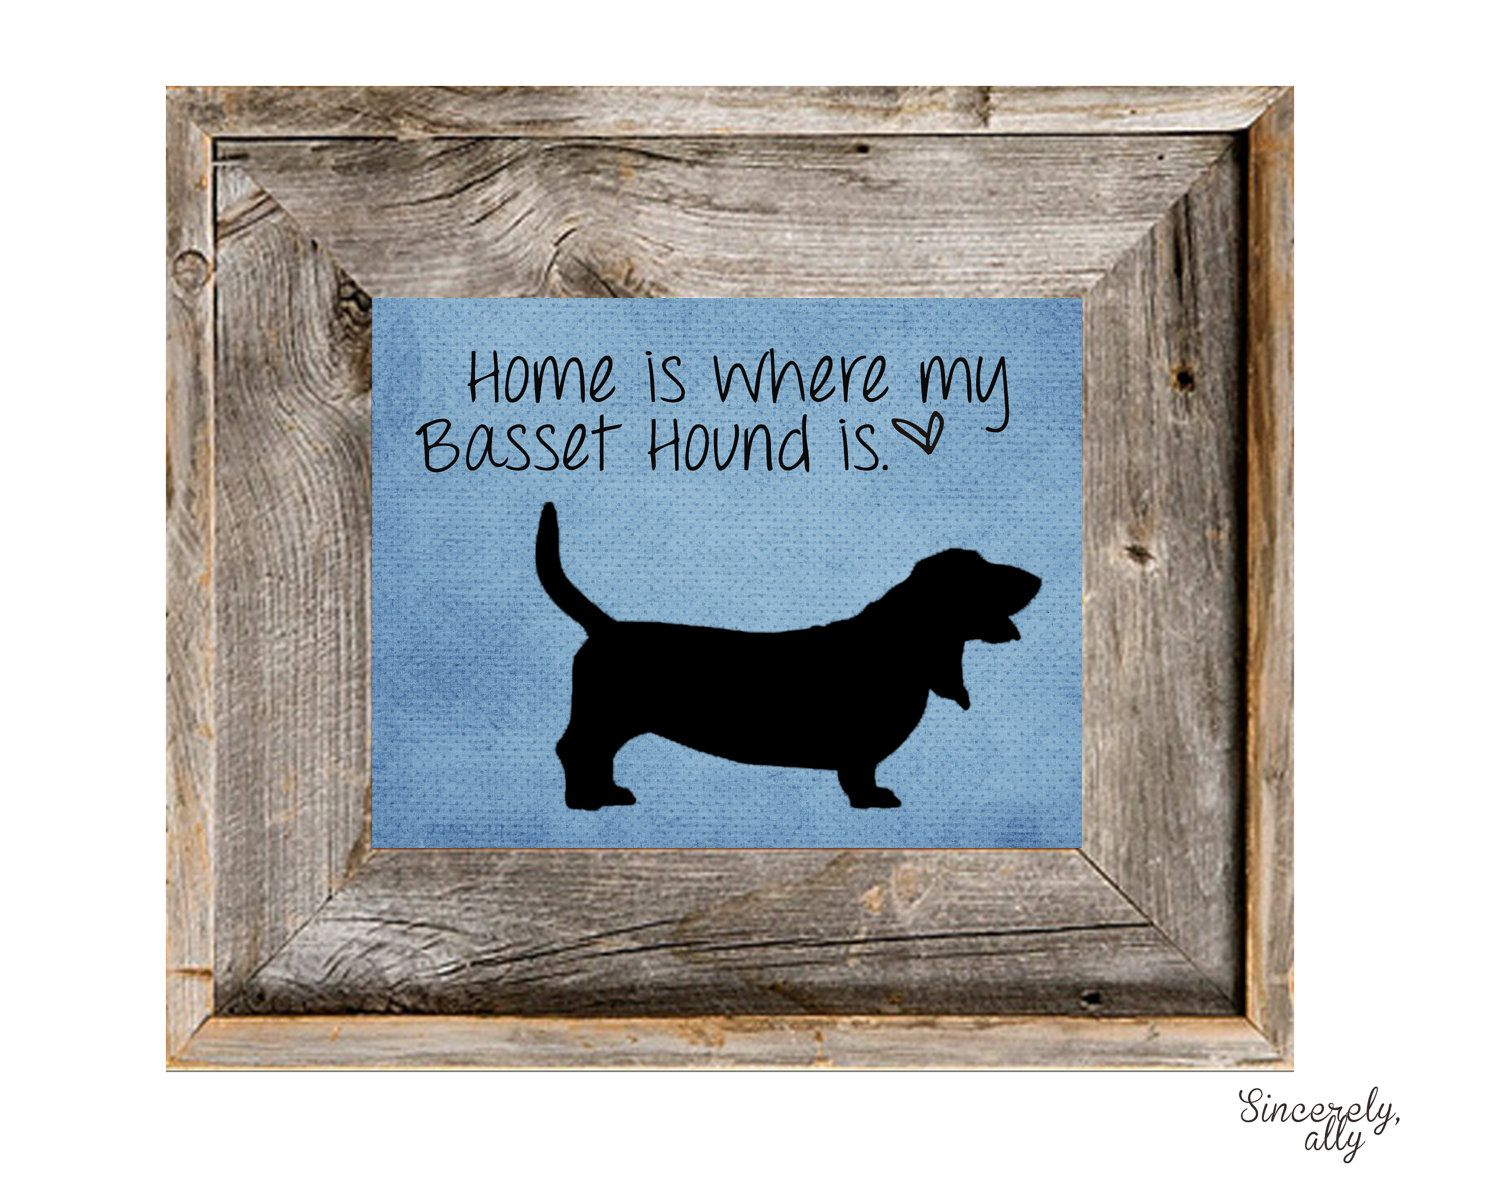 Home is Where my Basset Hound is.